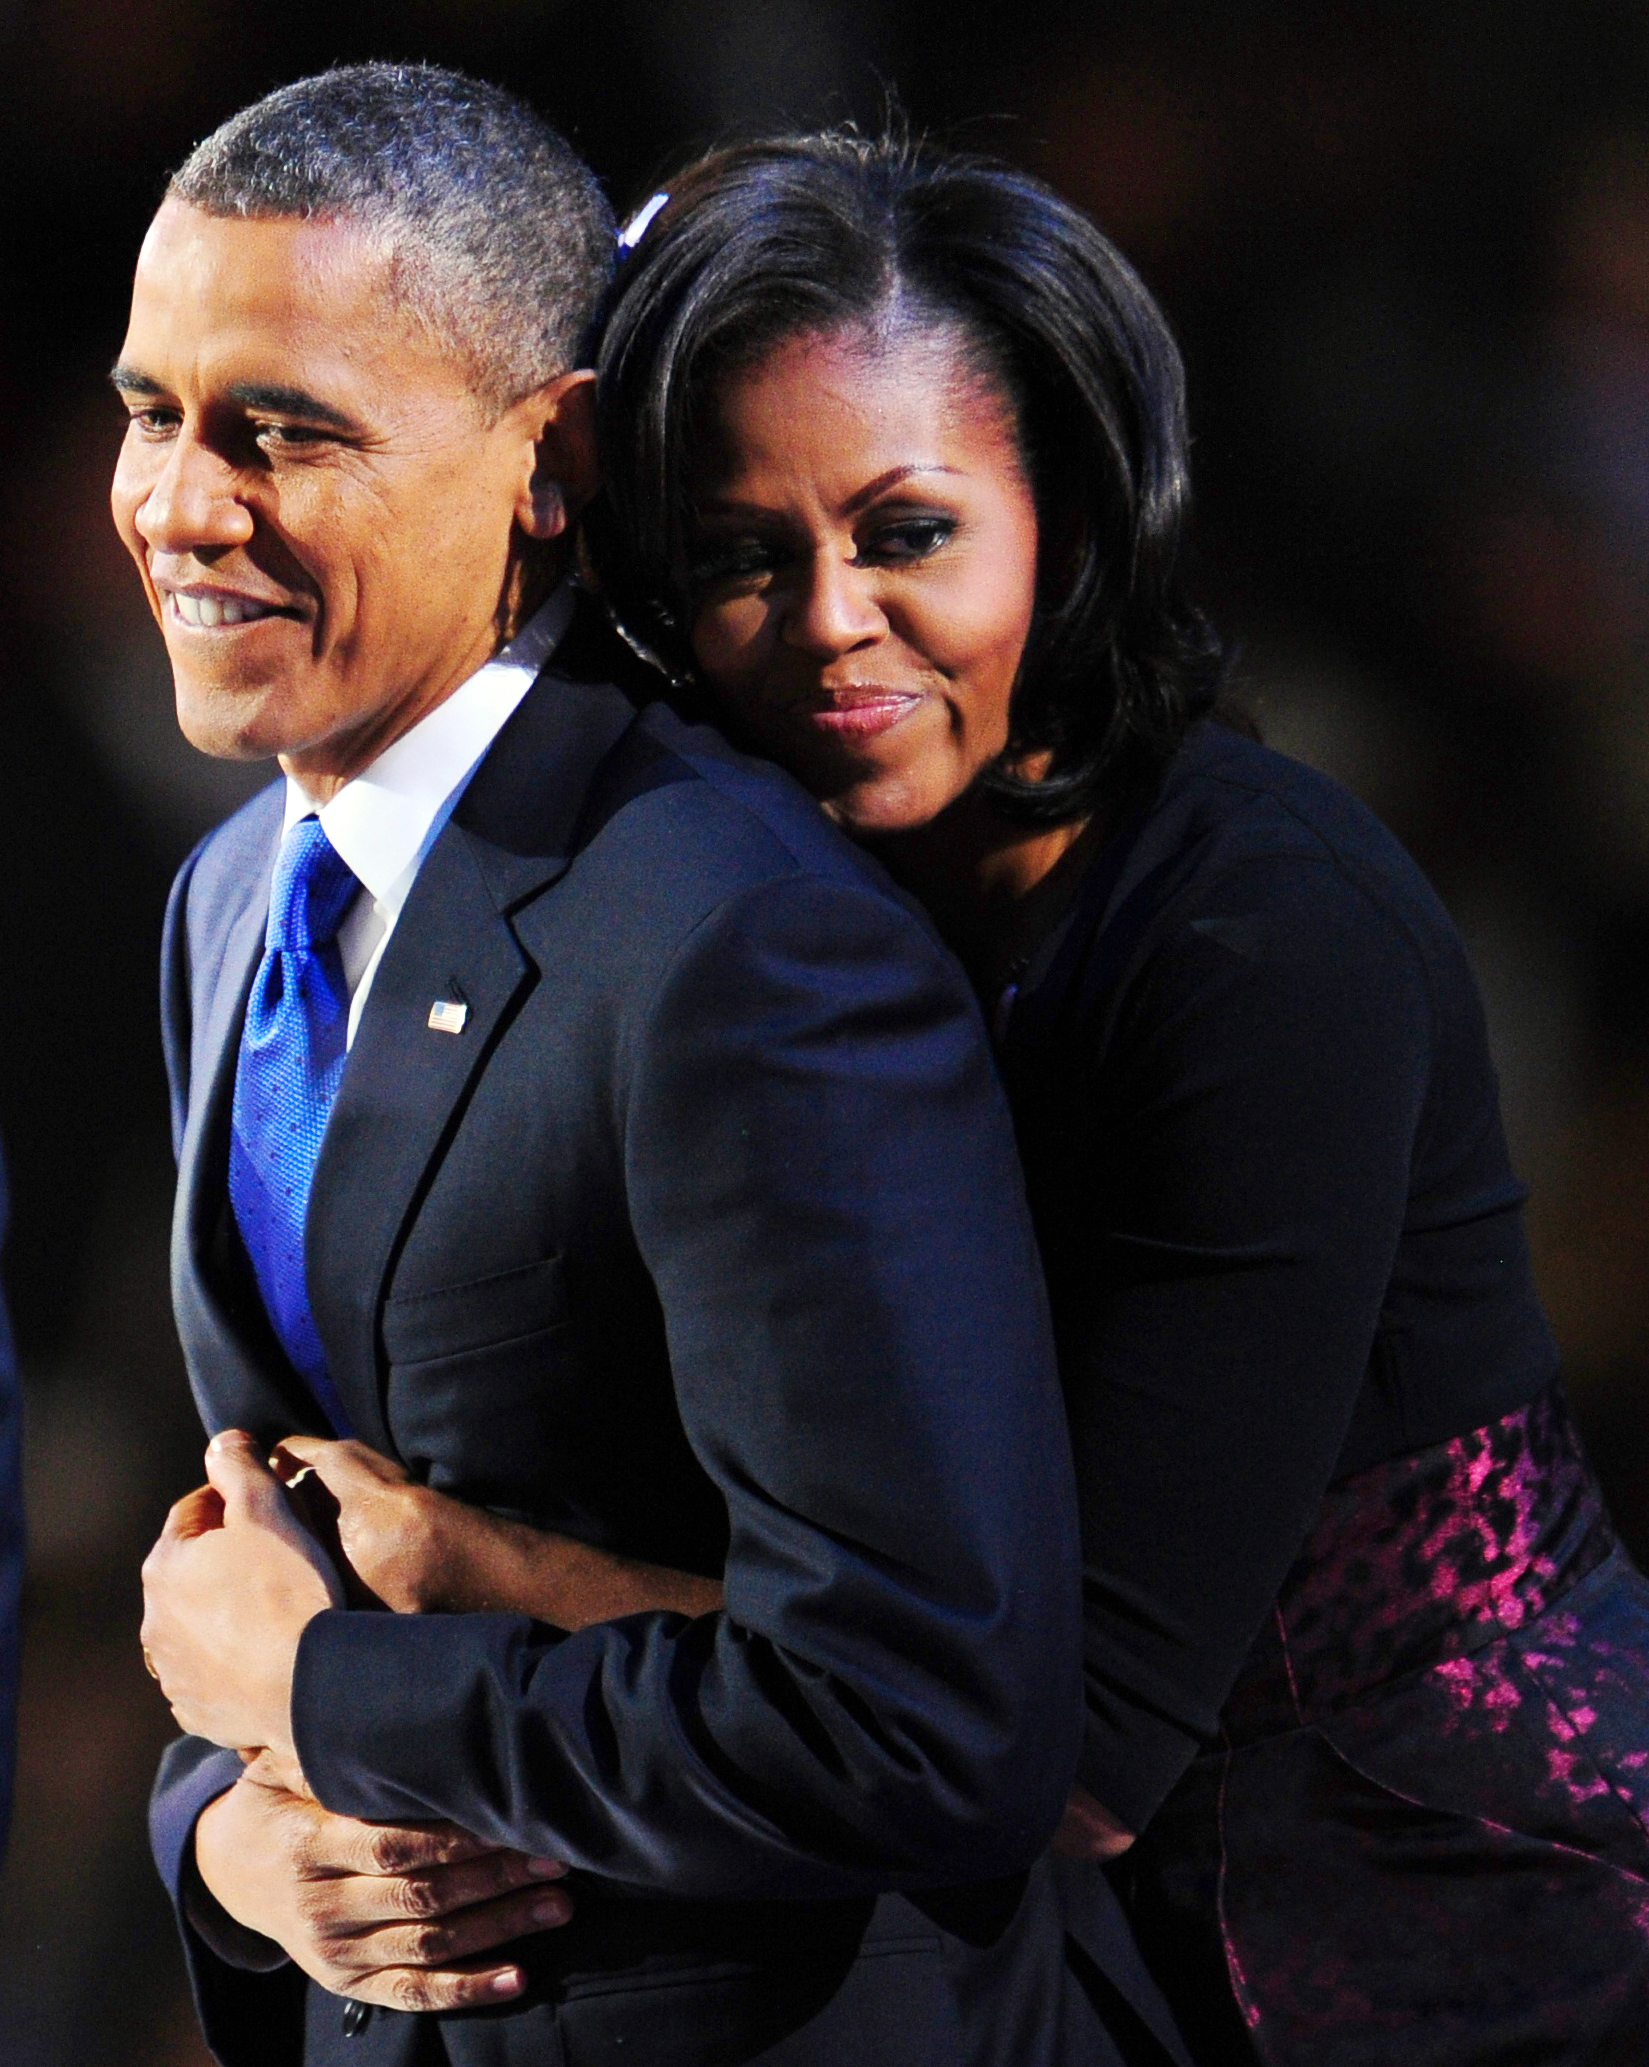 michelle obama�s response to her husband�s epic dnc speech